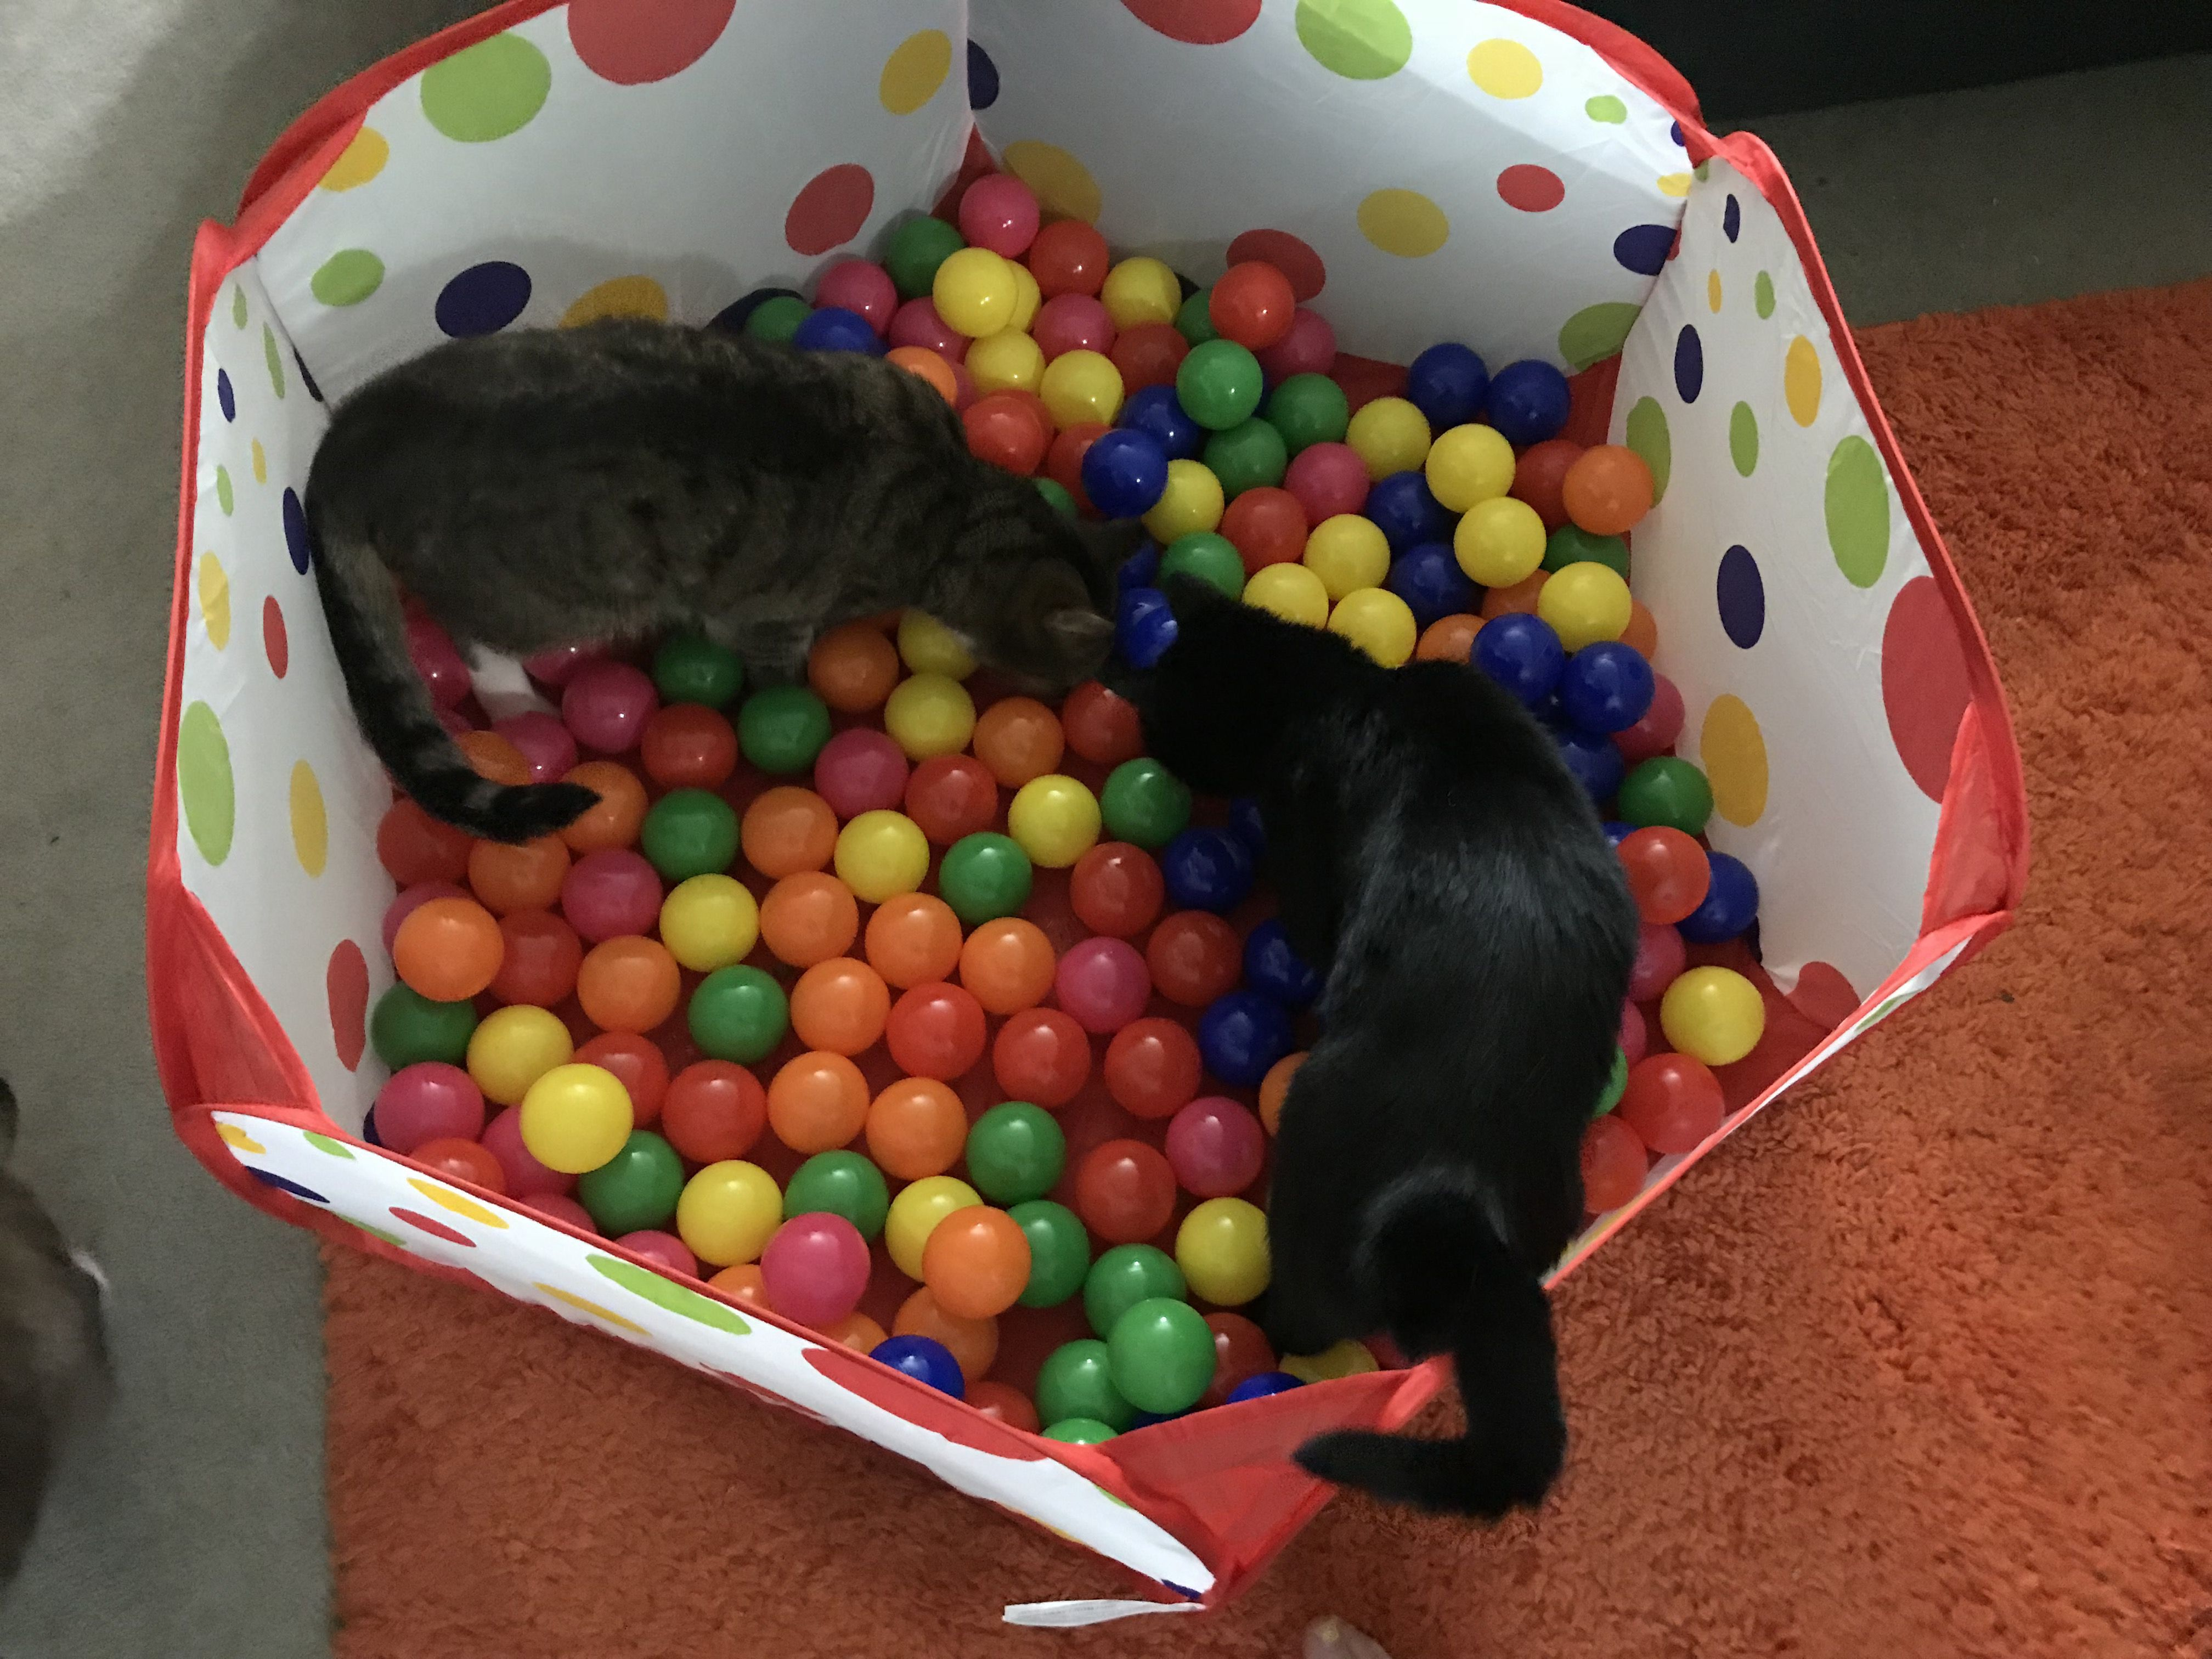 two cats in a ball pit searching for treats